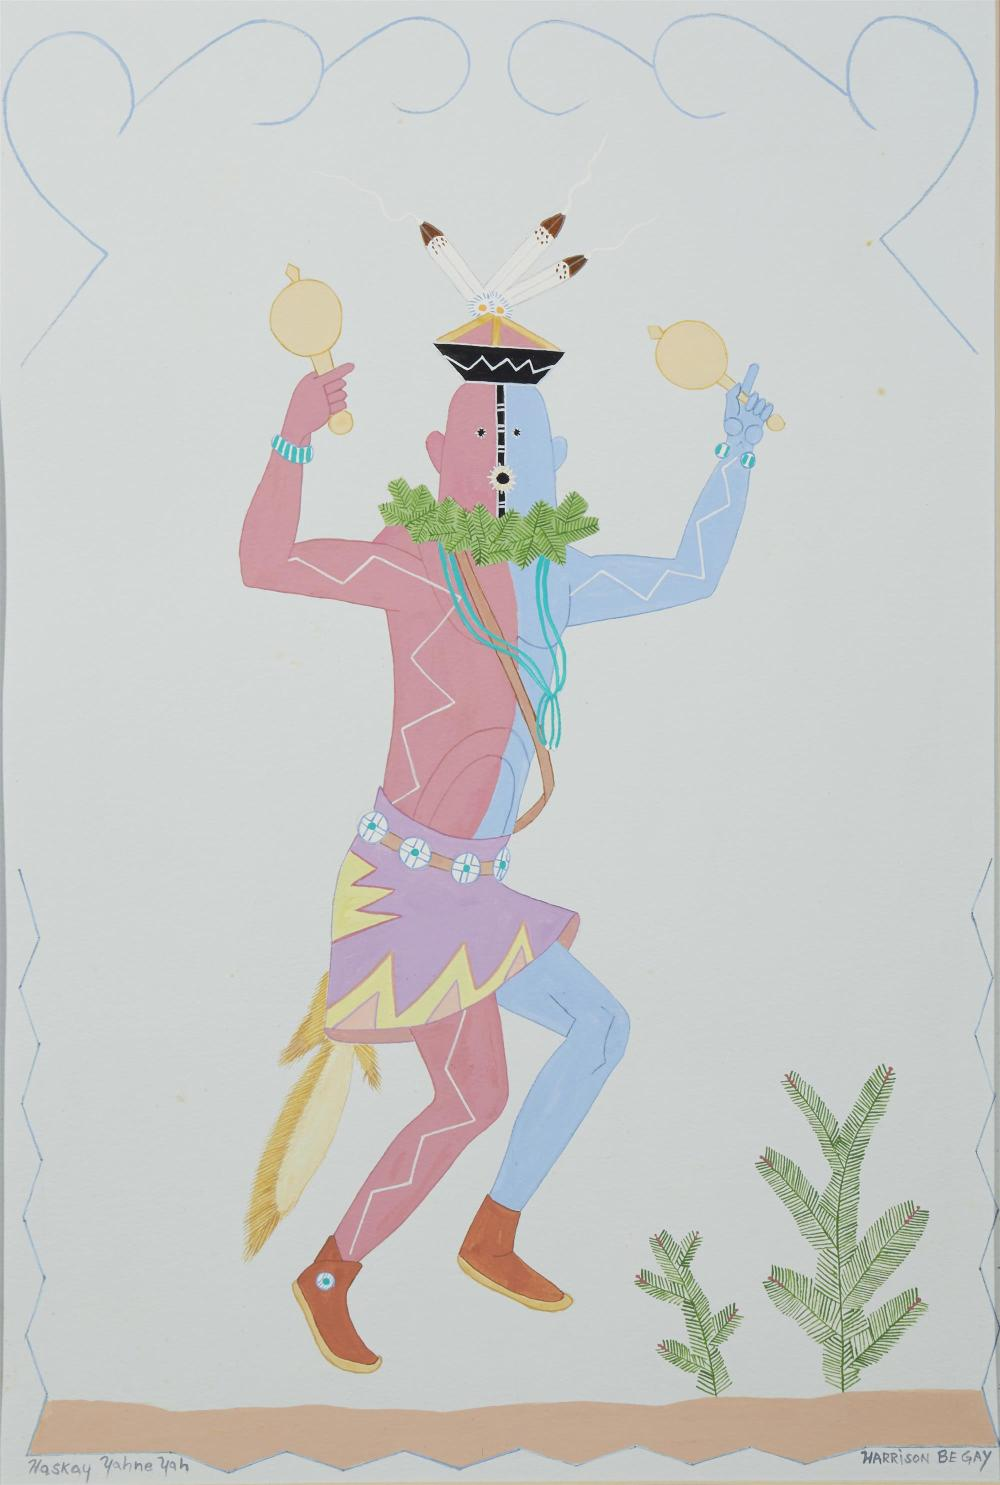 """Harrison (Haskay Yahne Yah) Begay, (1914-2012, American/Navajo), """"Indian dancer with rattles"""" and """"Indians galloping on horseback,"""" (tw"""